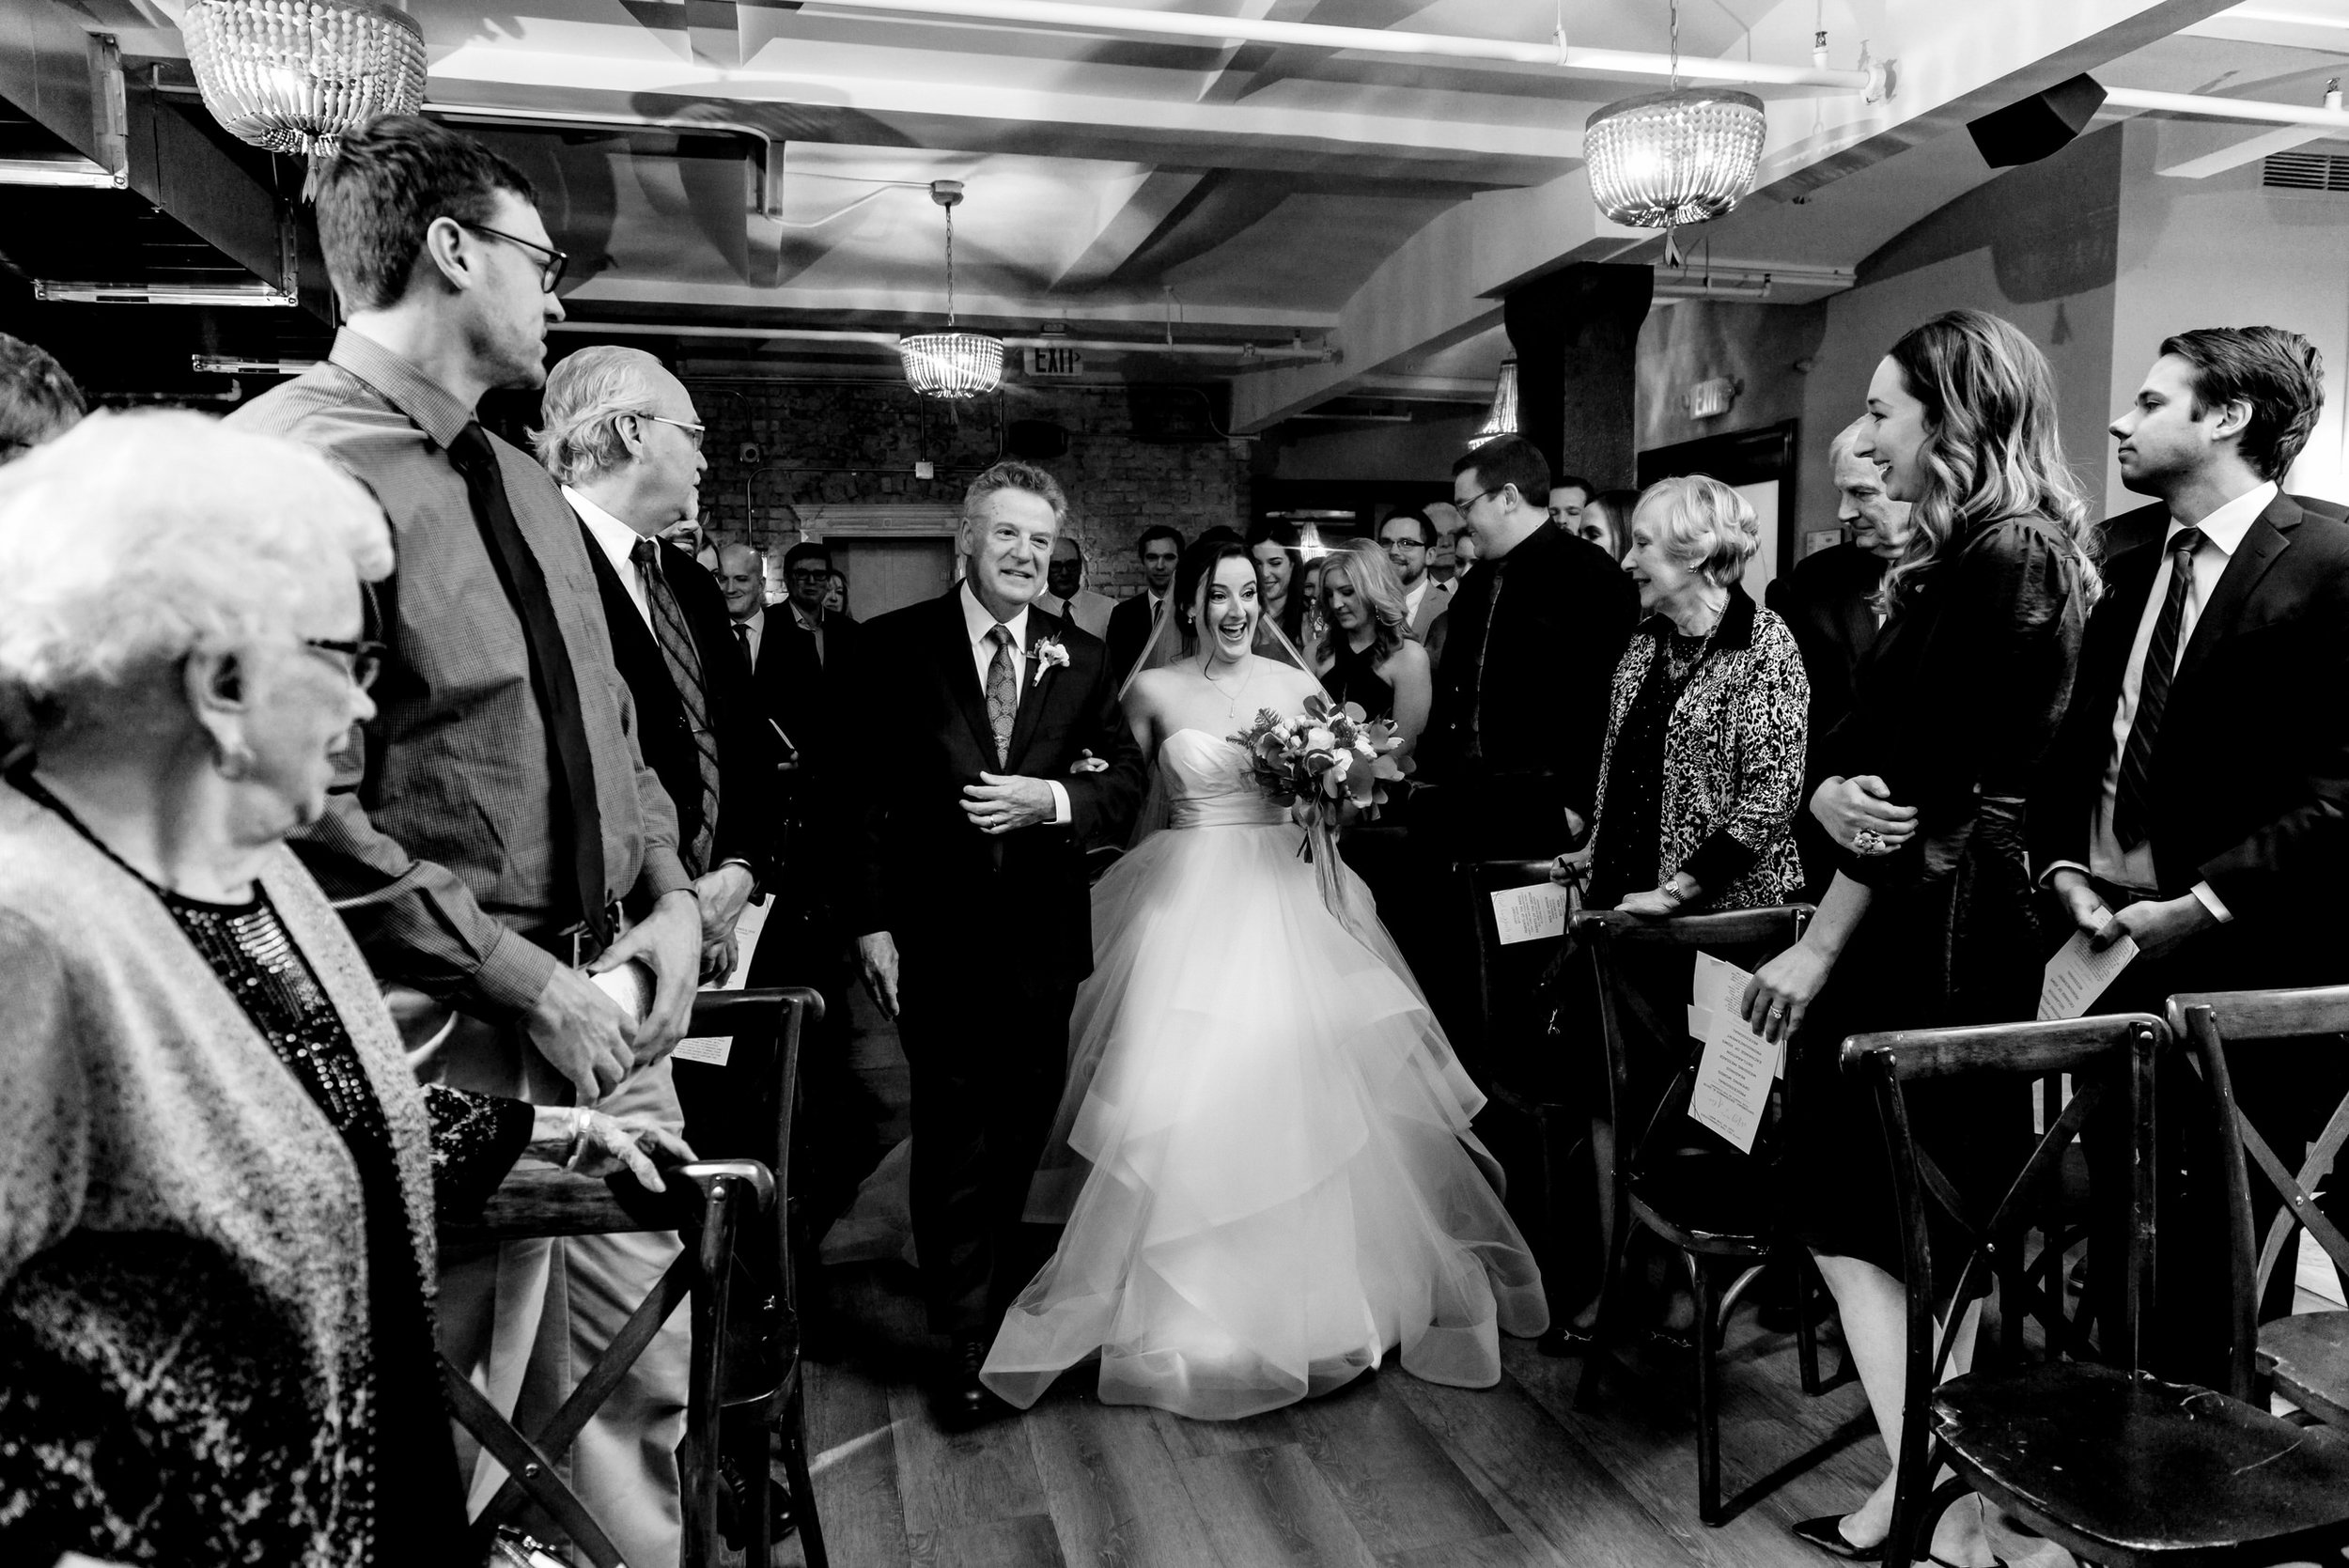 Megan and Alec - Lumber Exchange Wedding Sawyer Dylan Room - Highlights BW-183.jpg